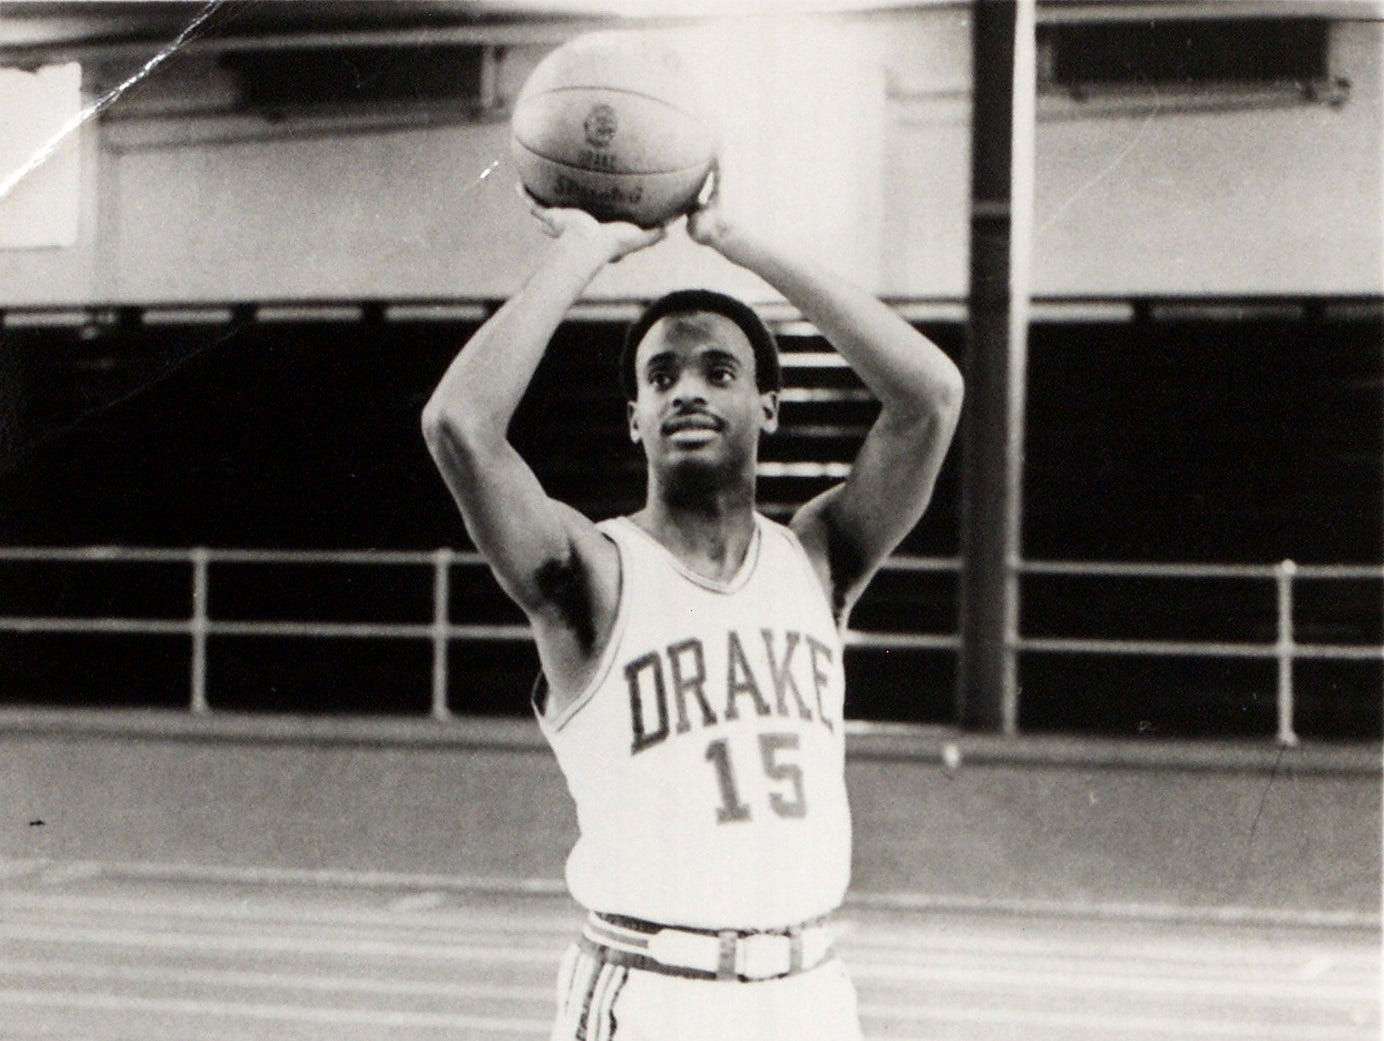 Willie McCarter was a 6-3 senior guard on the 1968-69 Drake men's basketball team that made it to the Final Four. He averaged a team-high 20.4 points, taking a team-high 610 shots that season.